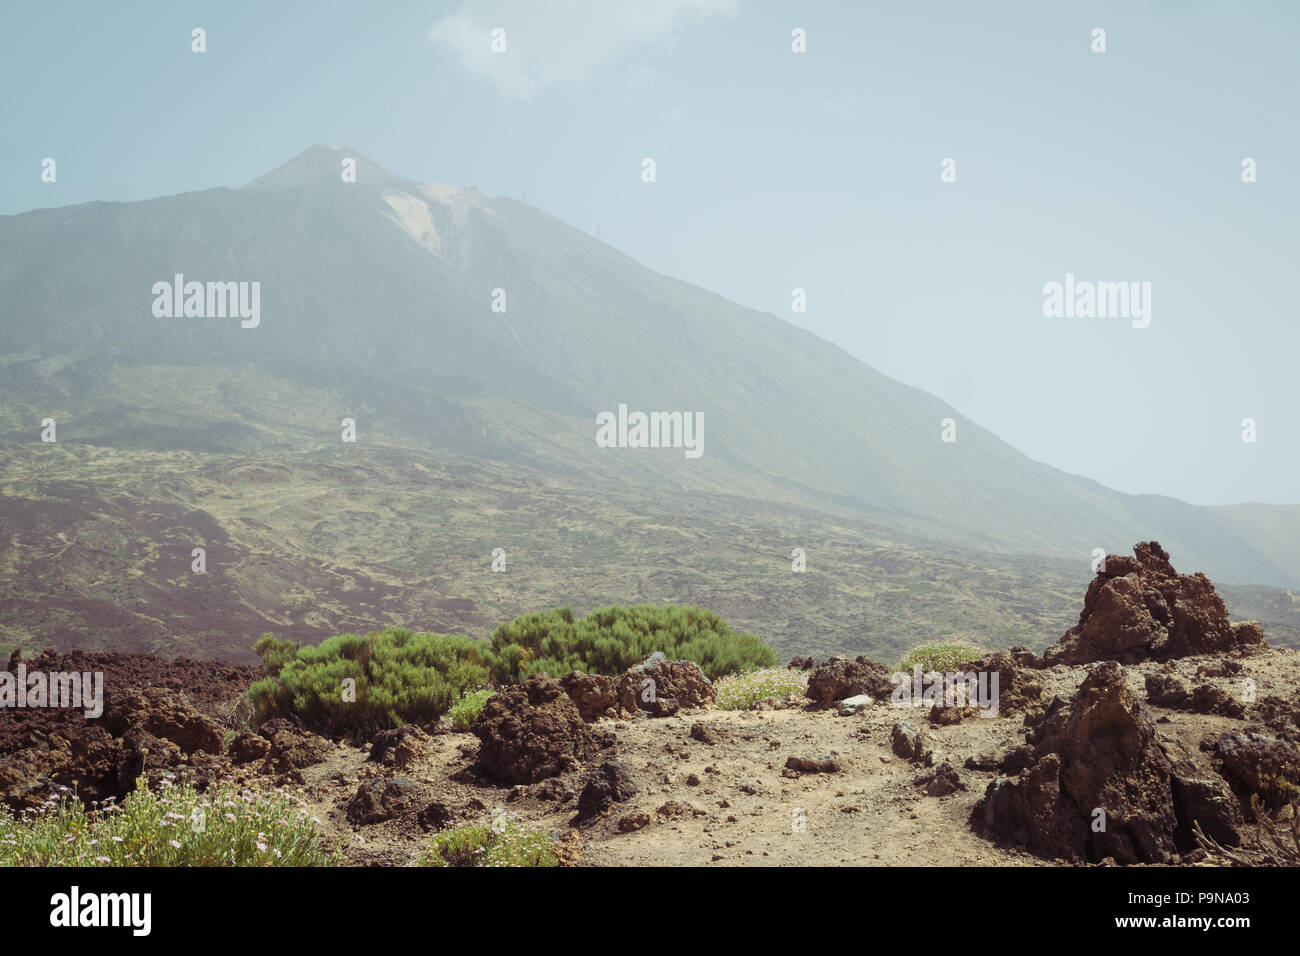 Mount Teide volcano in Tenerife hidden by the haze and sand of La Calima with arid scrubland and lava rock formations in the landscape - Stock Image